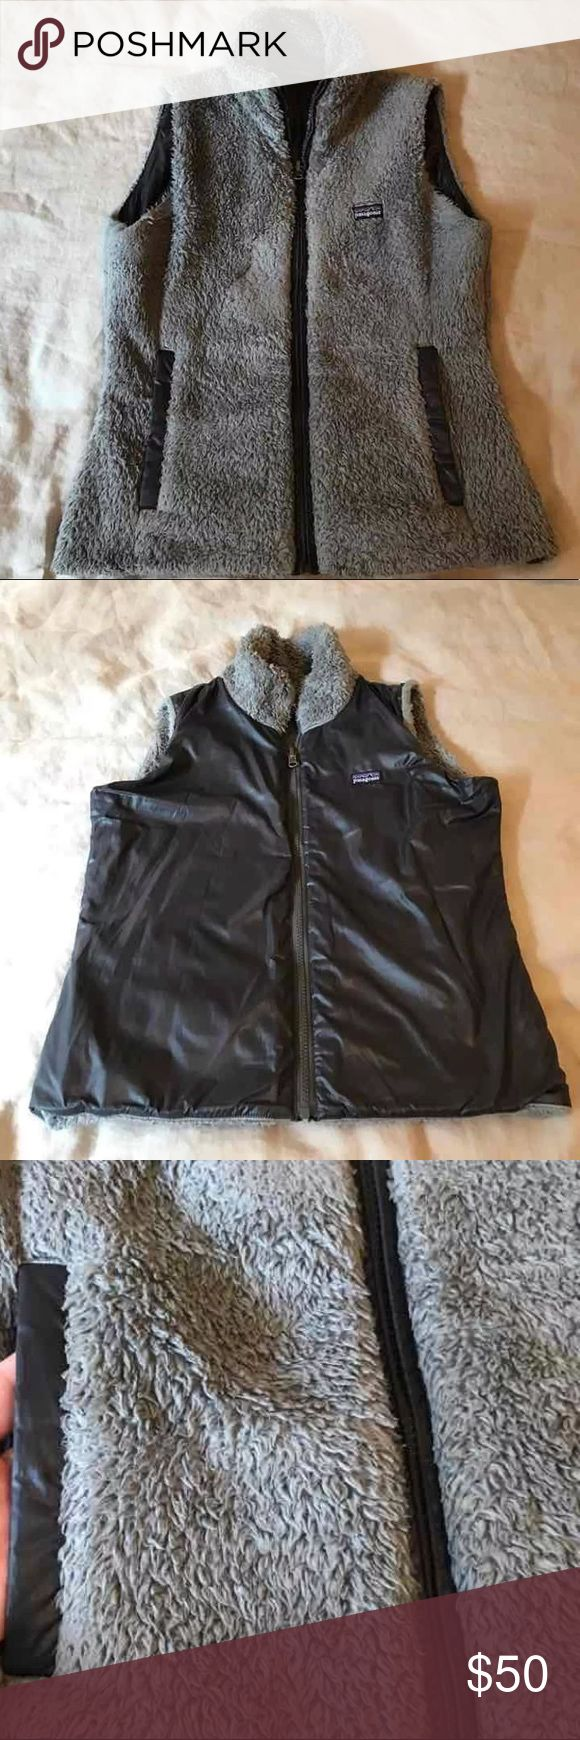 Submit ANY Offer! Patagonia Vest-Reversible Vest Good Condition! Patagonia Jackets & Coats Vests